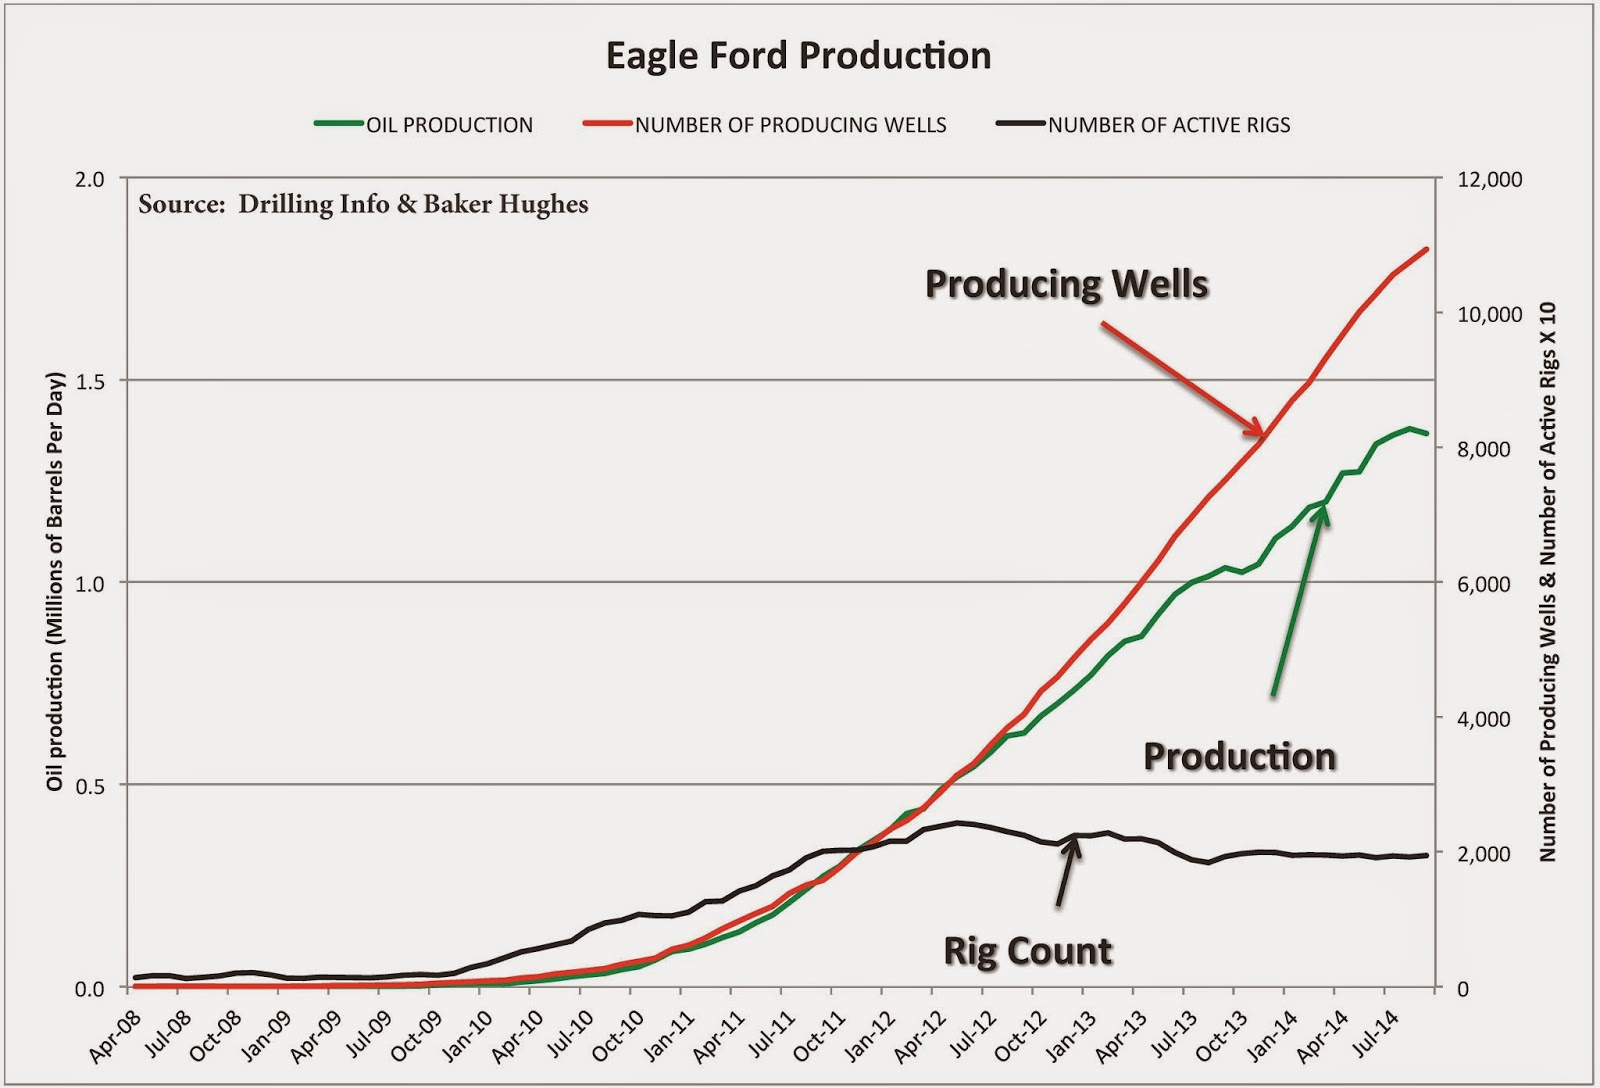 medium resolution of the next chart below shows eagle ford oil production the number of producing wells and the number of active drilling rigs versus time